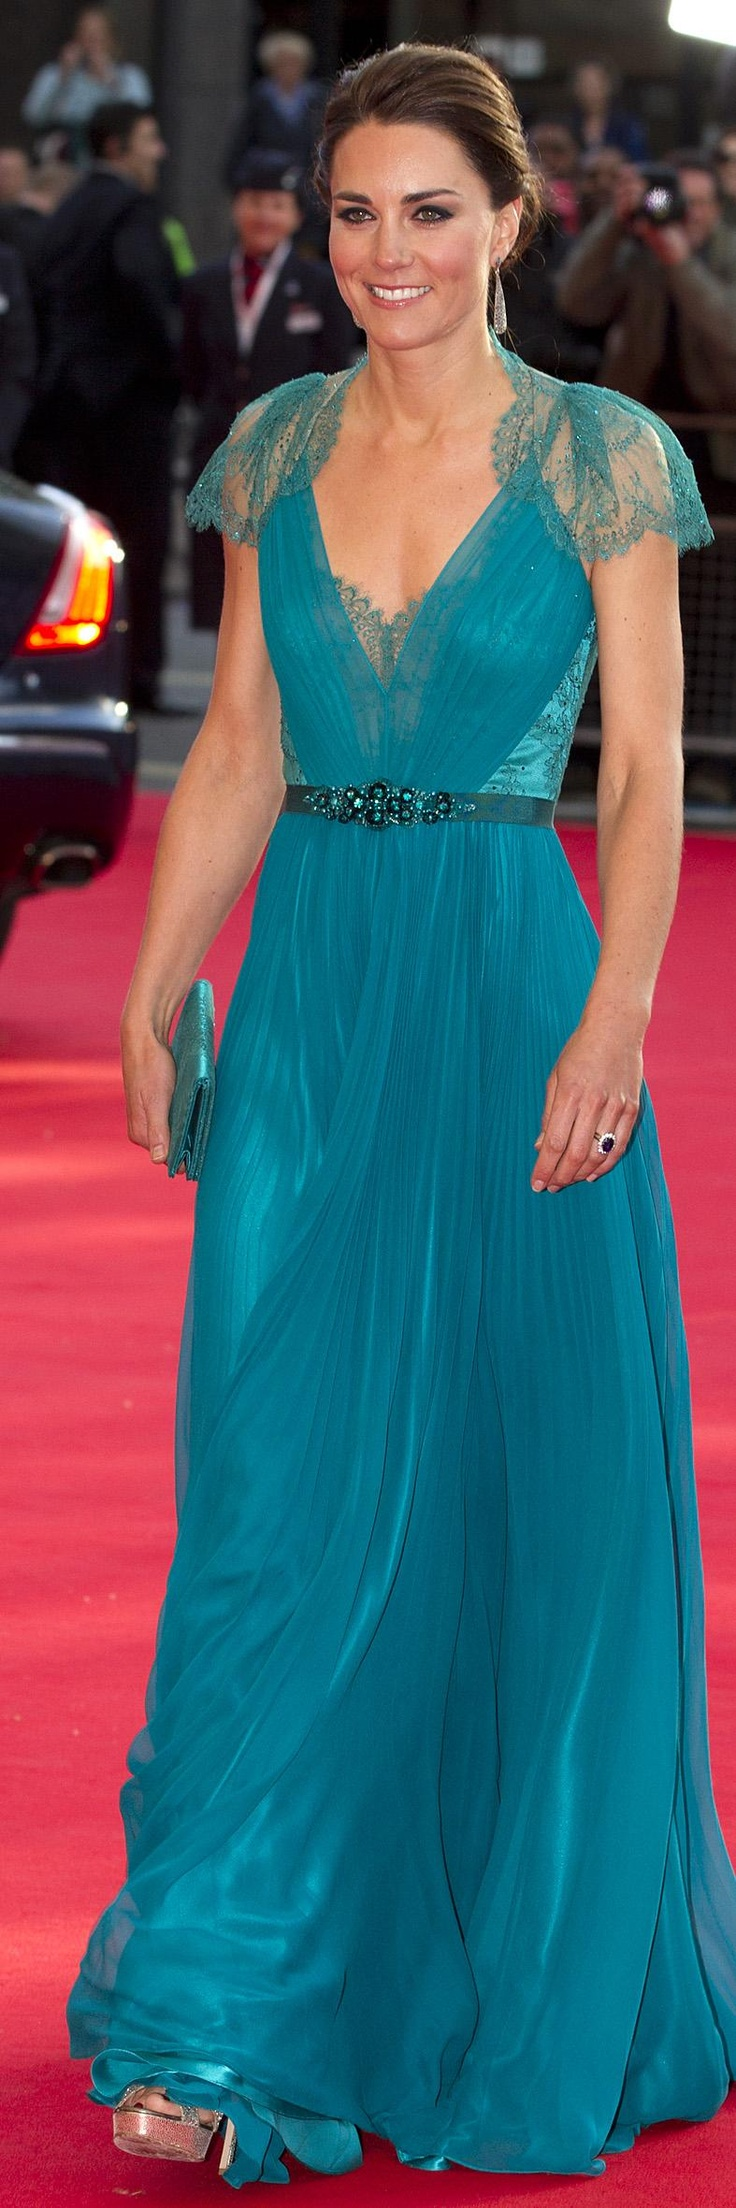 65 best Kate Middleton - The Duchess of Cambridge images on ...